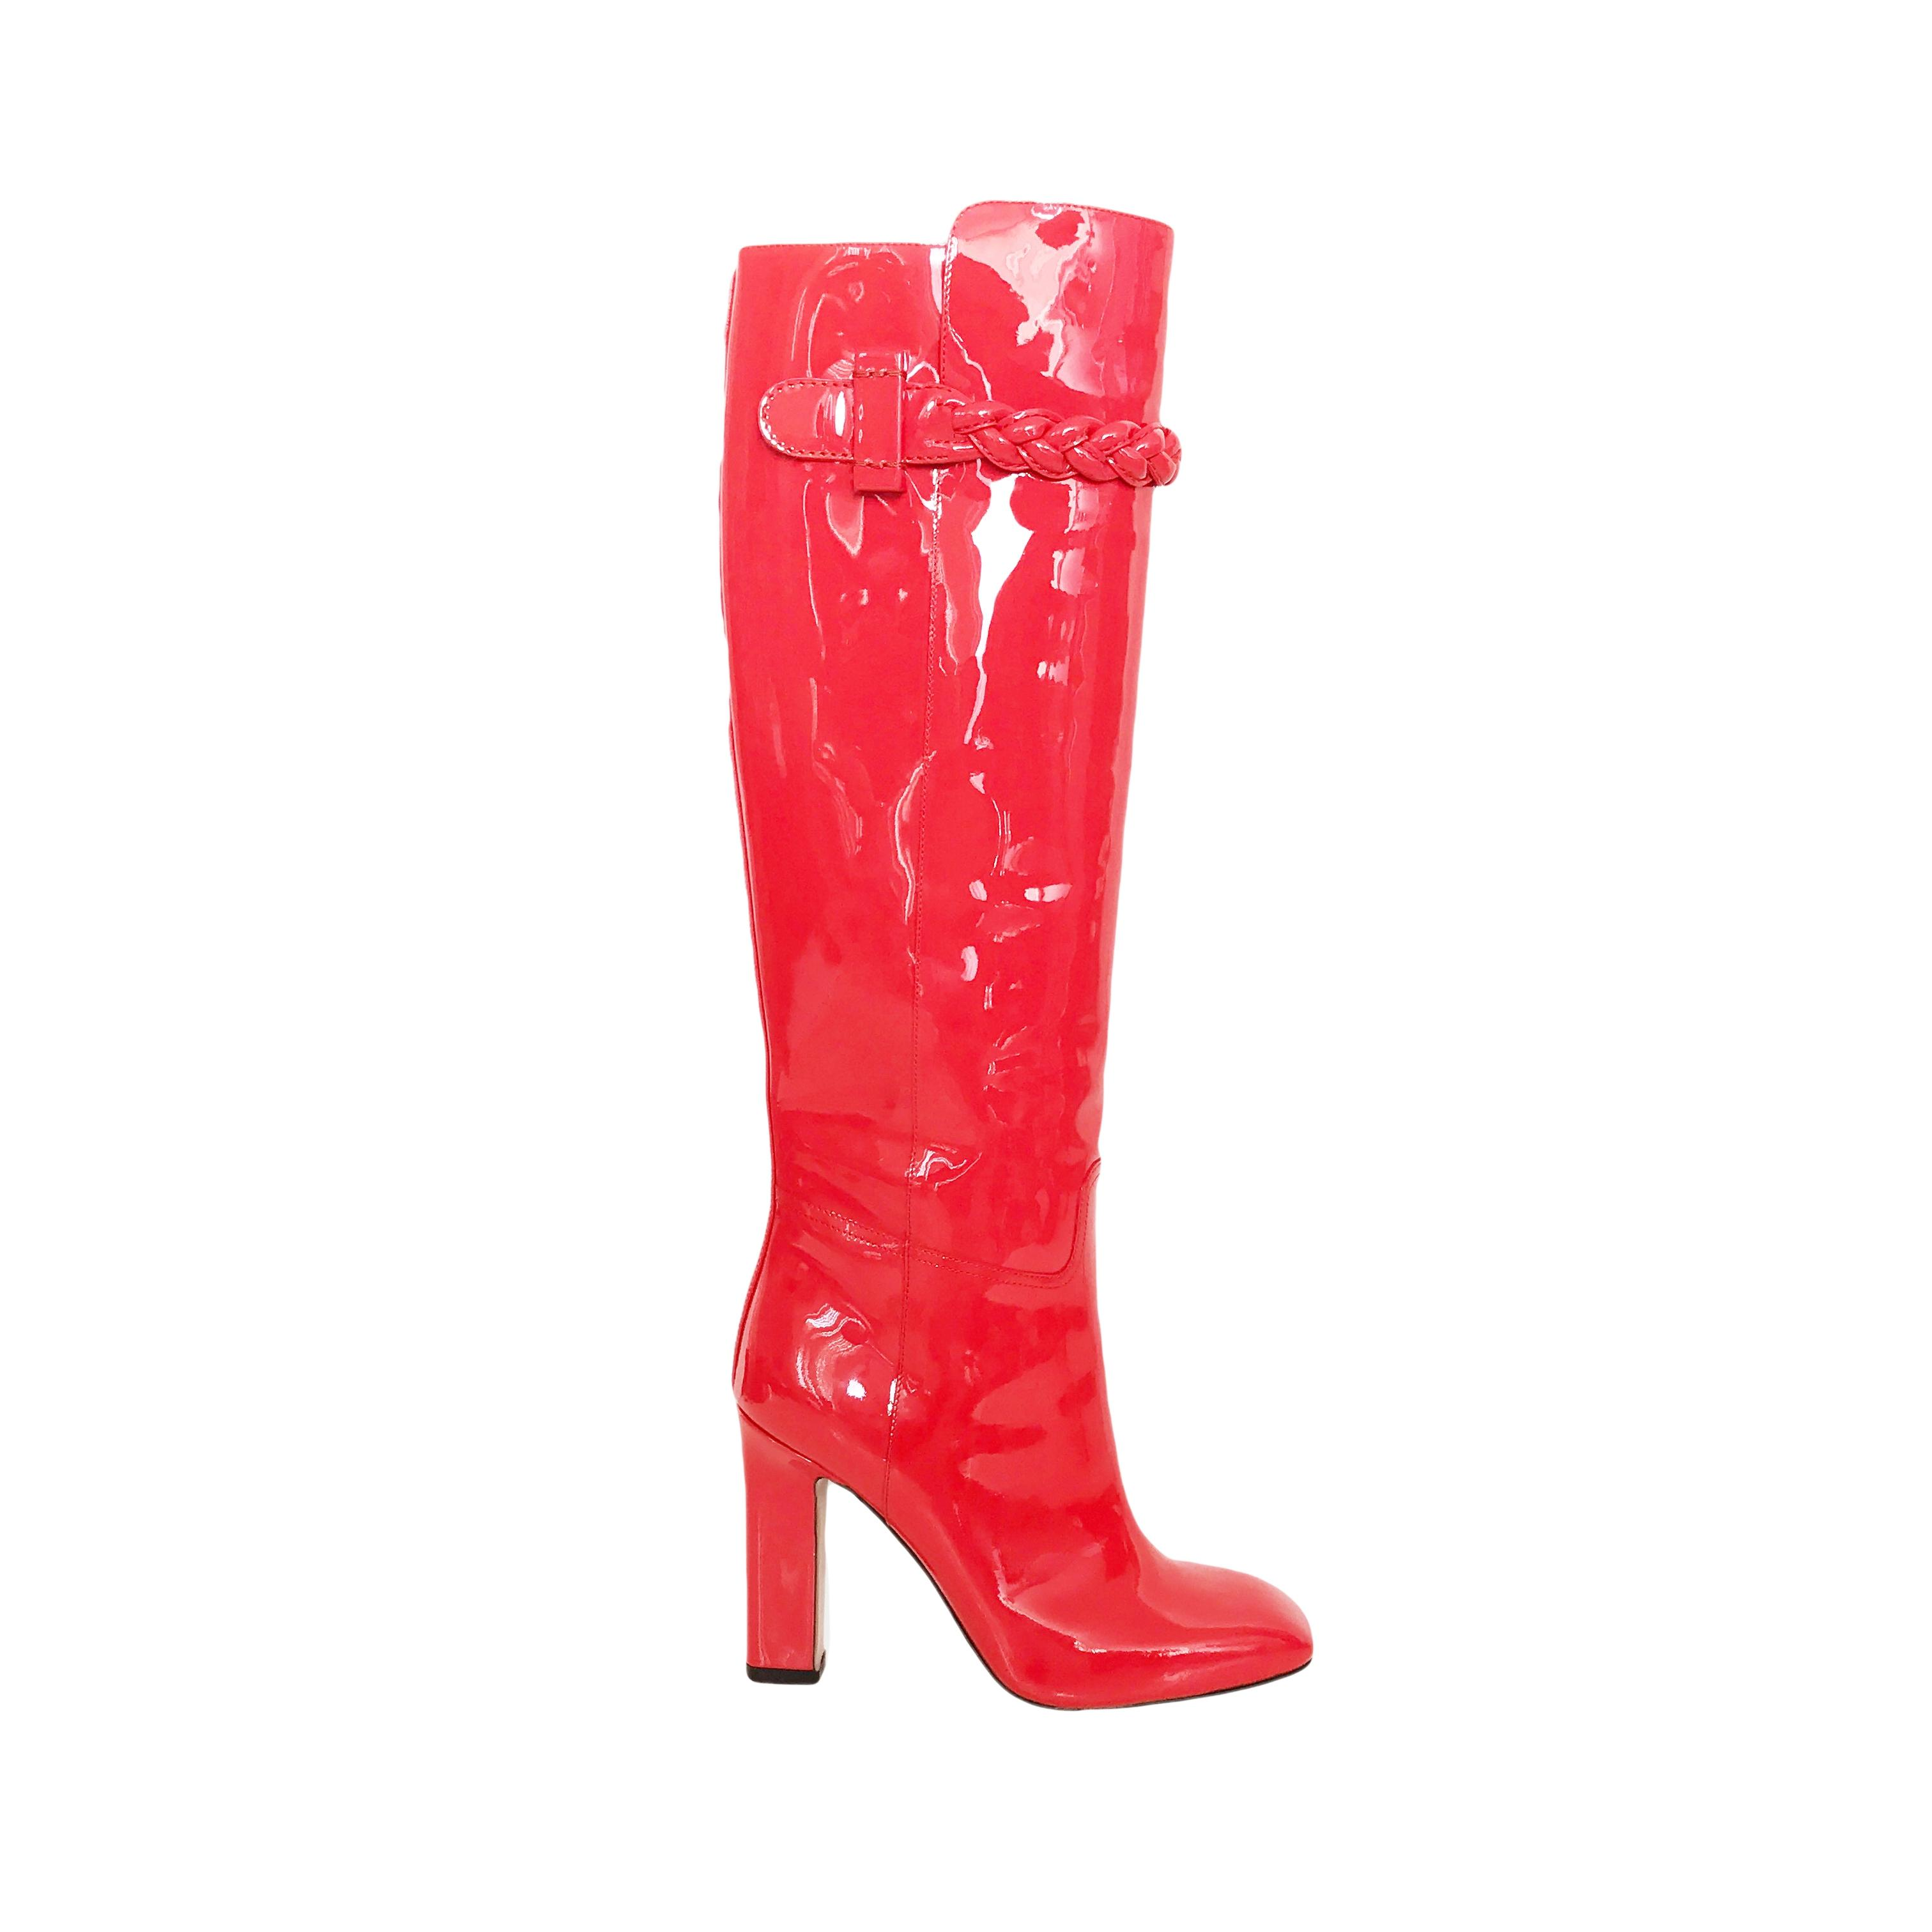 bd83ce37fe6 Valentino Orange Tbc Braided Patent Patent Patent Leather Boots Booties Size  EU 37 (Approx. US 7) Regular (M